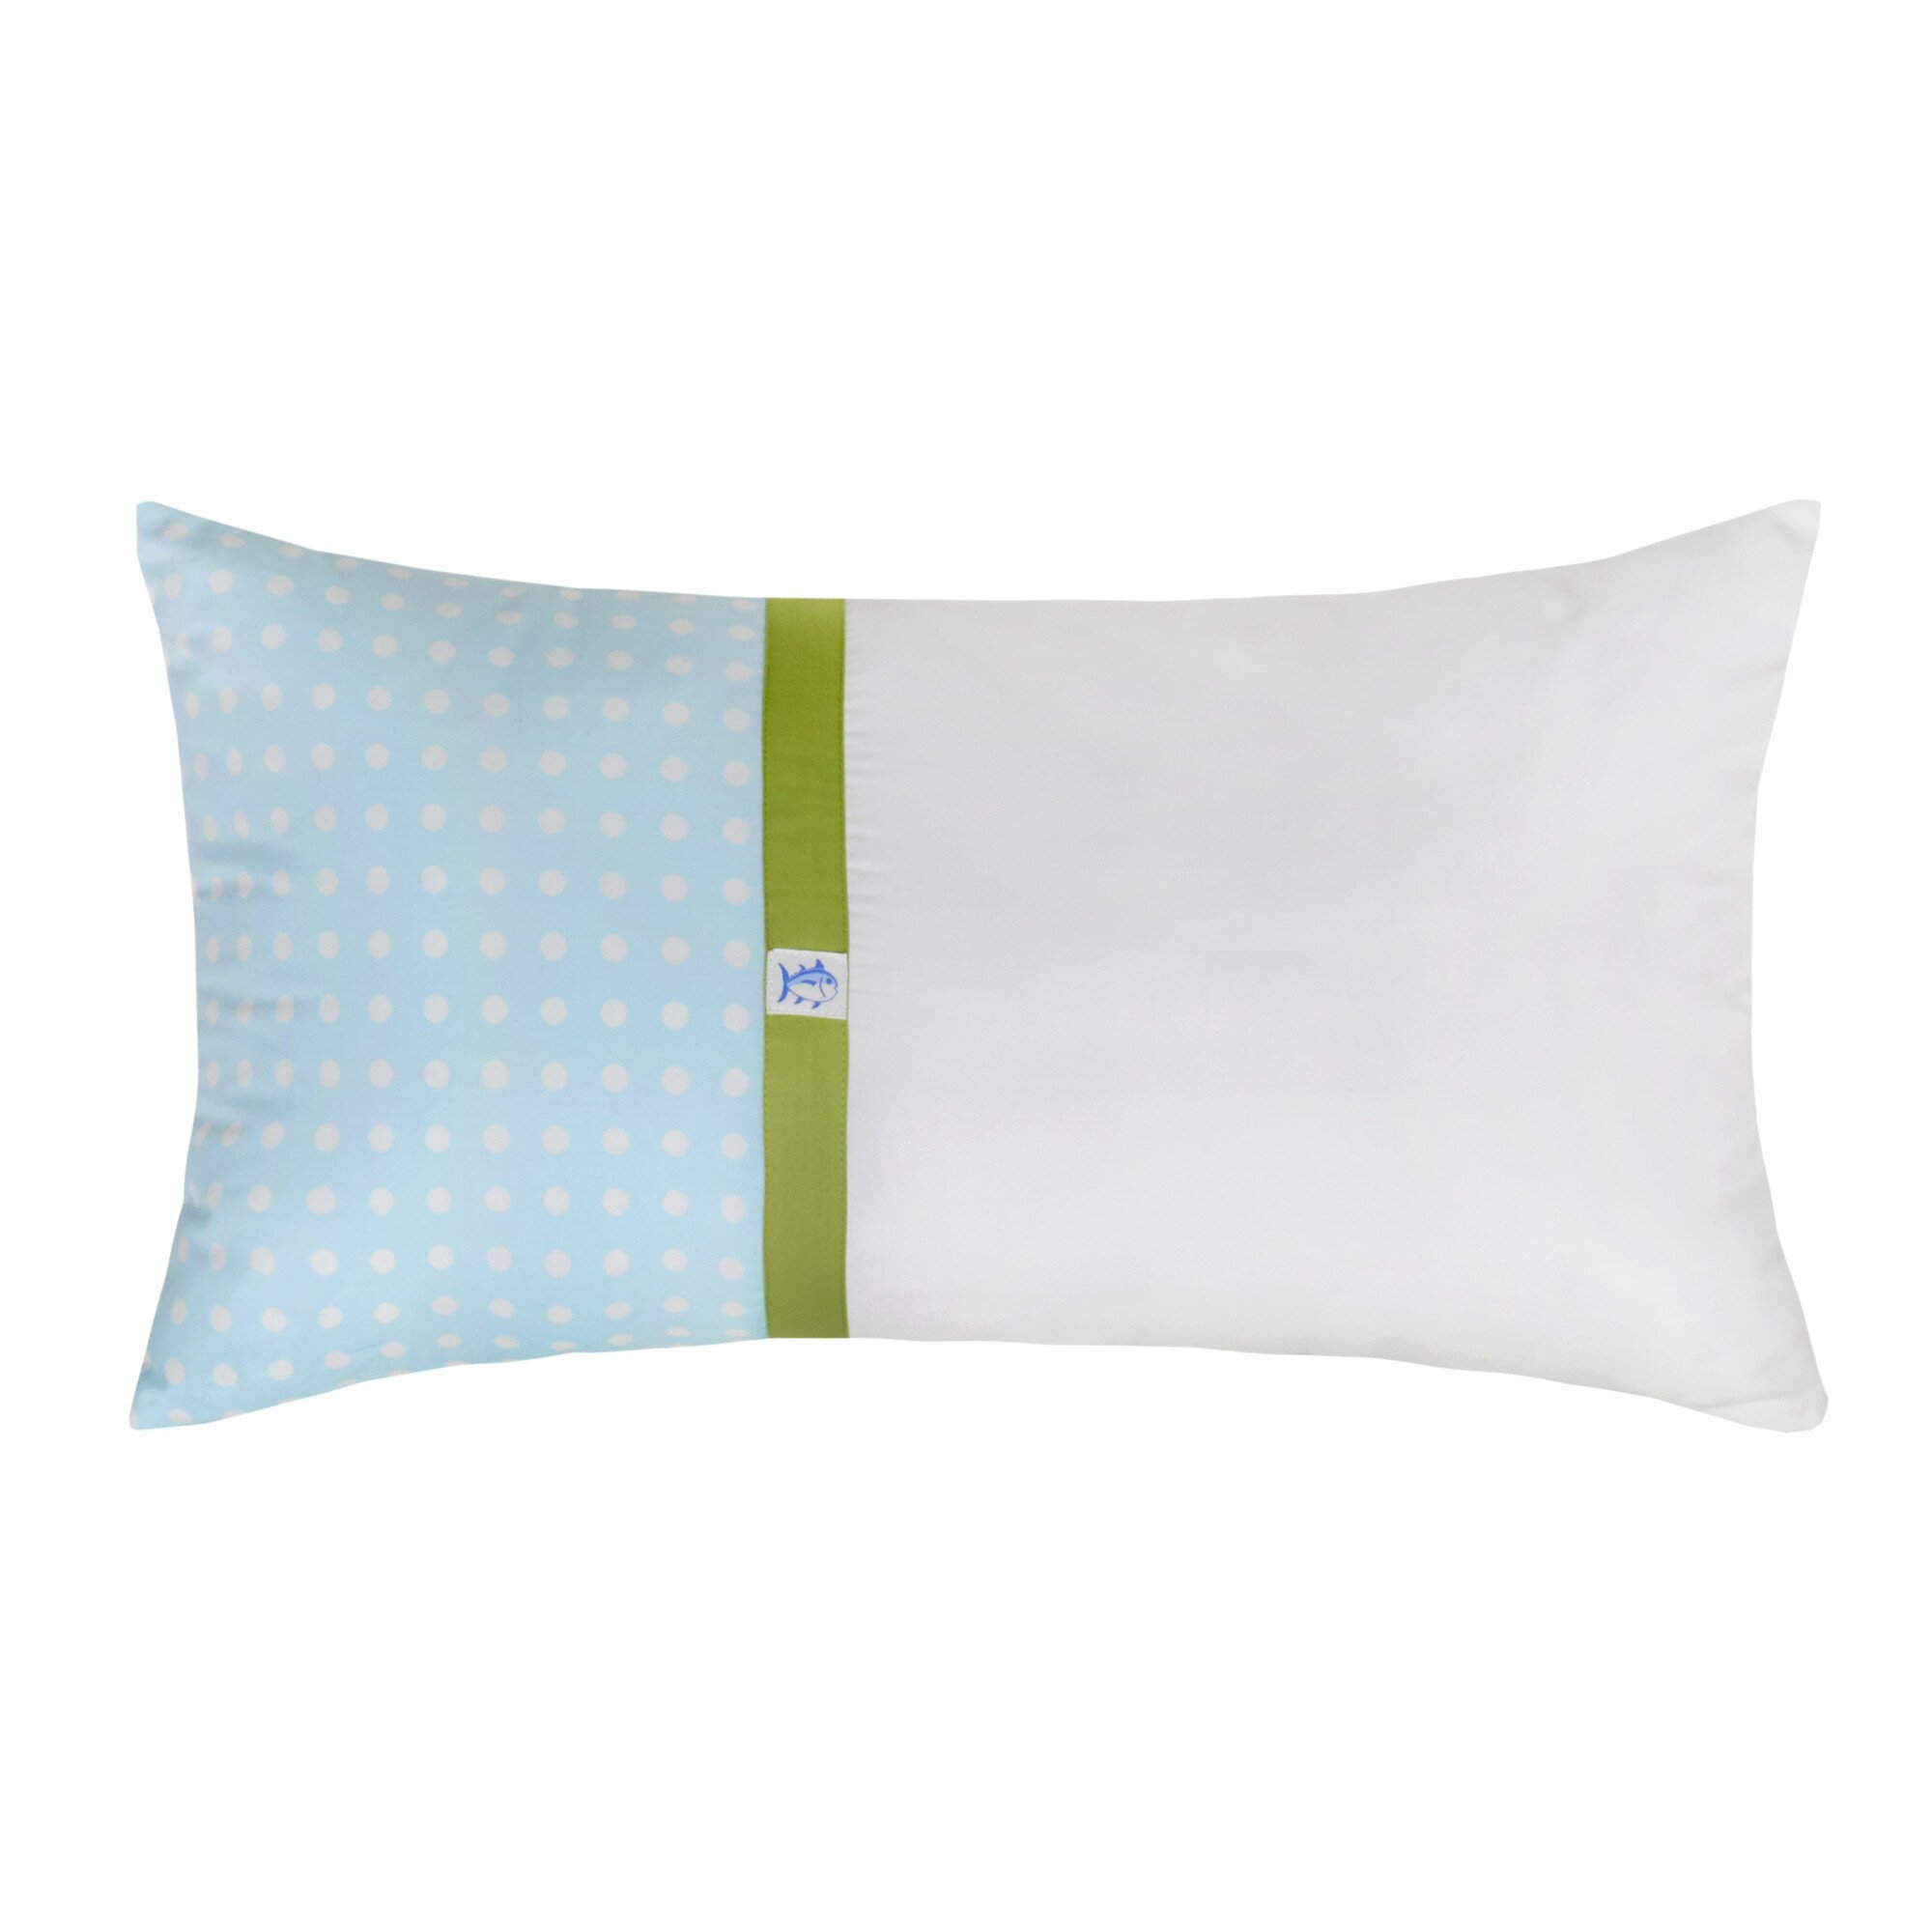 Southern tide chloe duvet cover collection reviews wayfair for Southern tide bedding